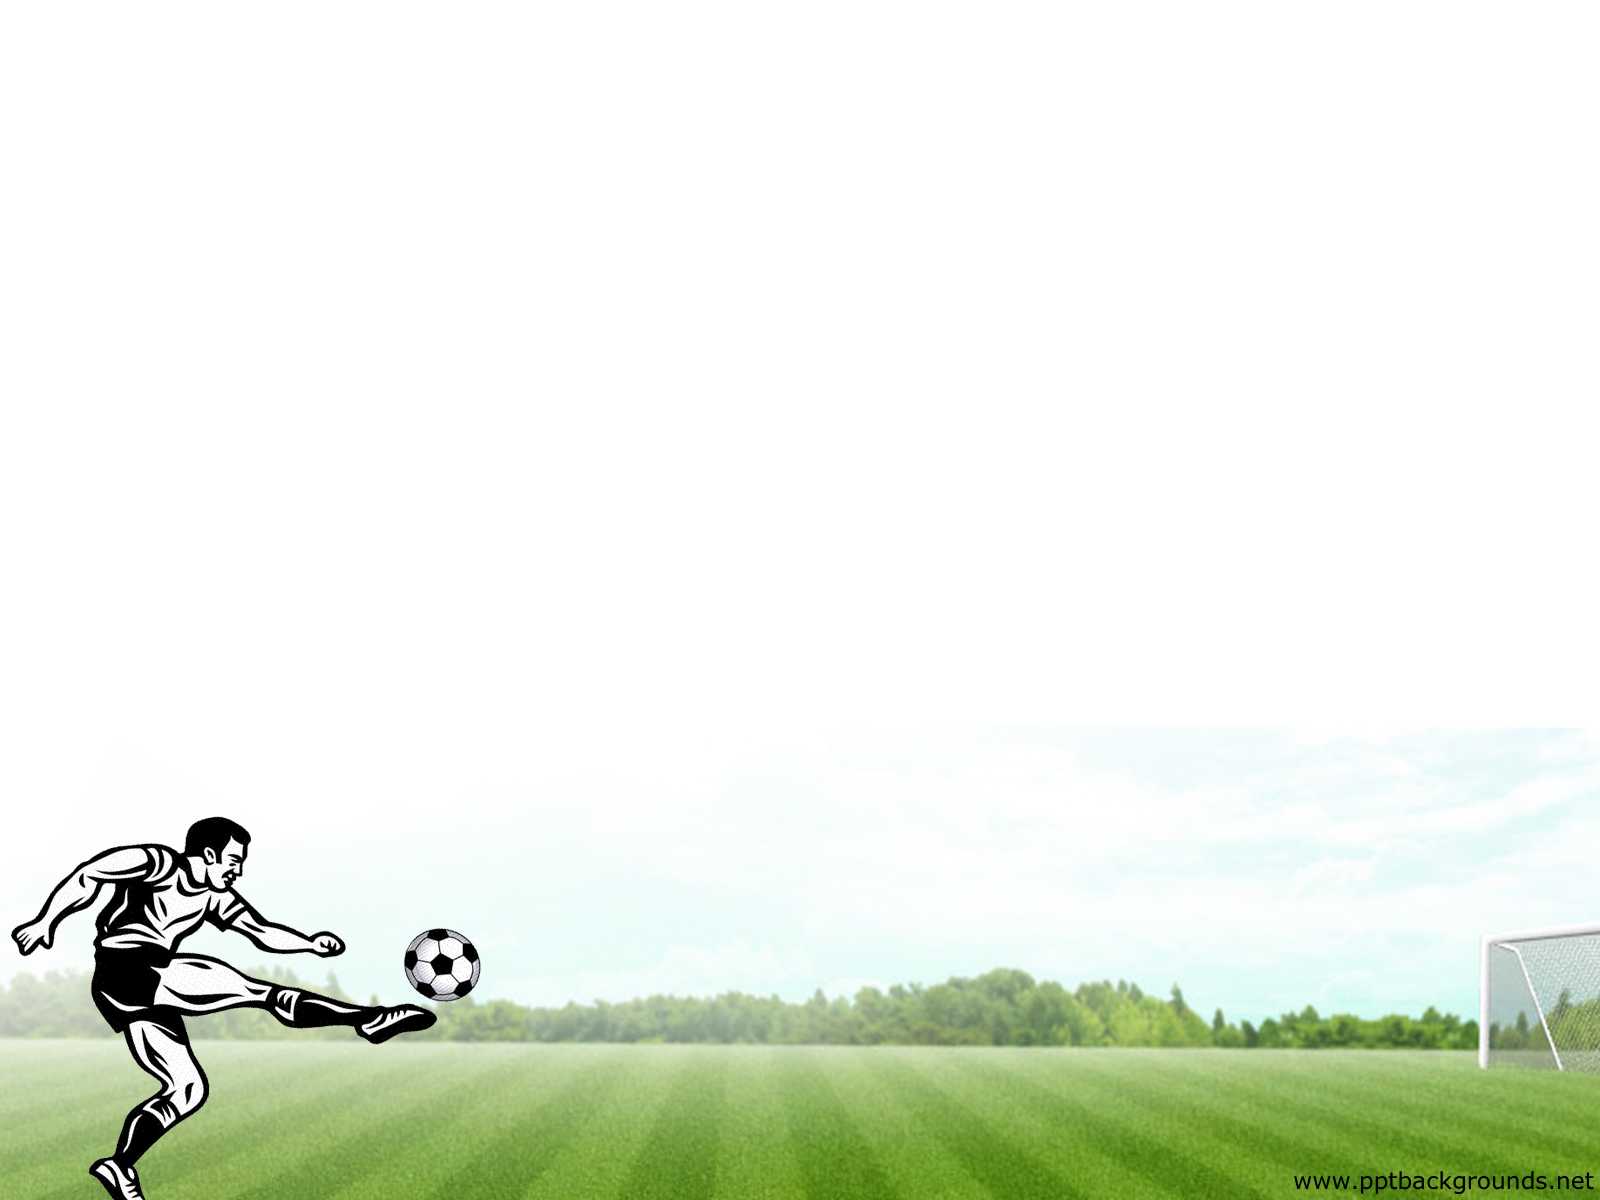 The man playing backgrounds. Football clipart powerpoint background